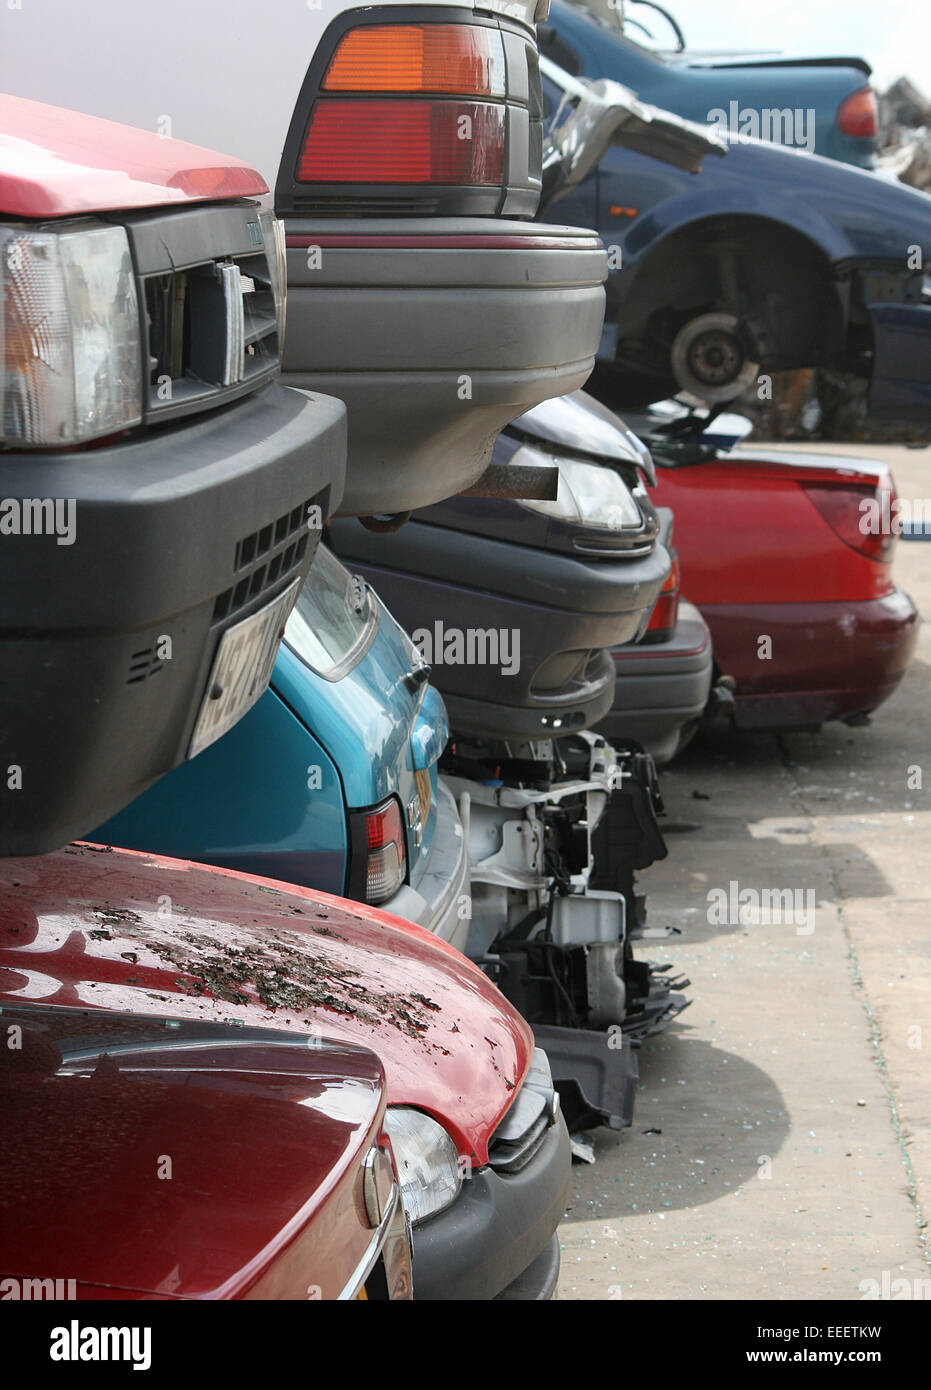 scrap cars in scrap yard, ready for dismantle, salvage or recycle, - Stock Image